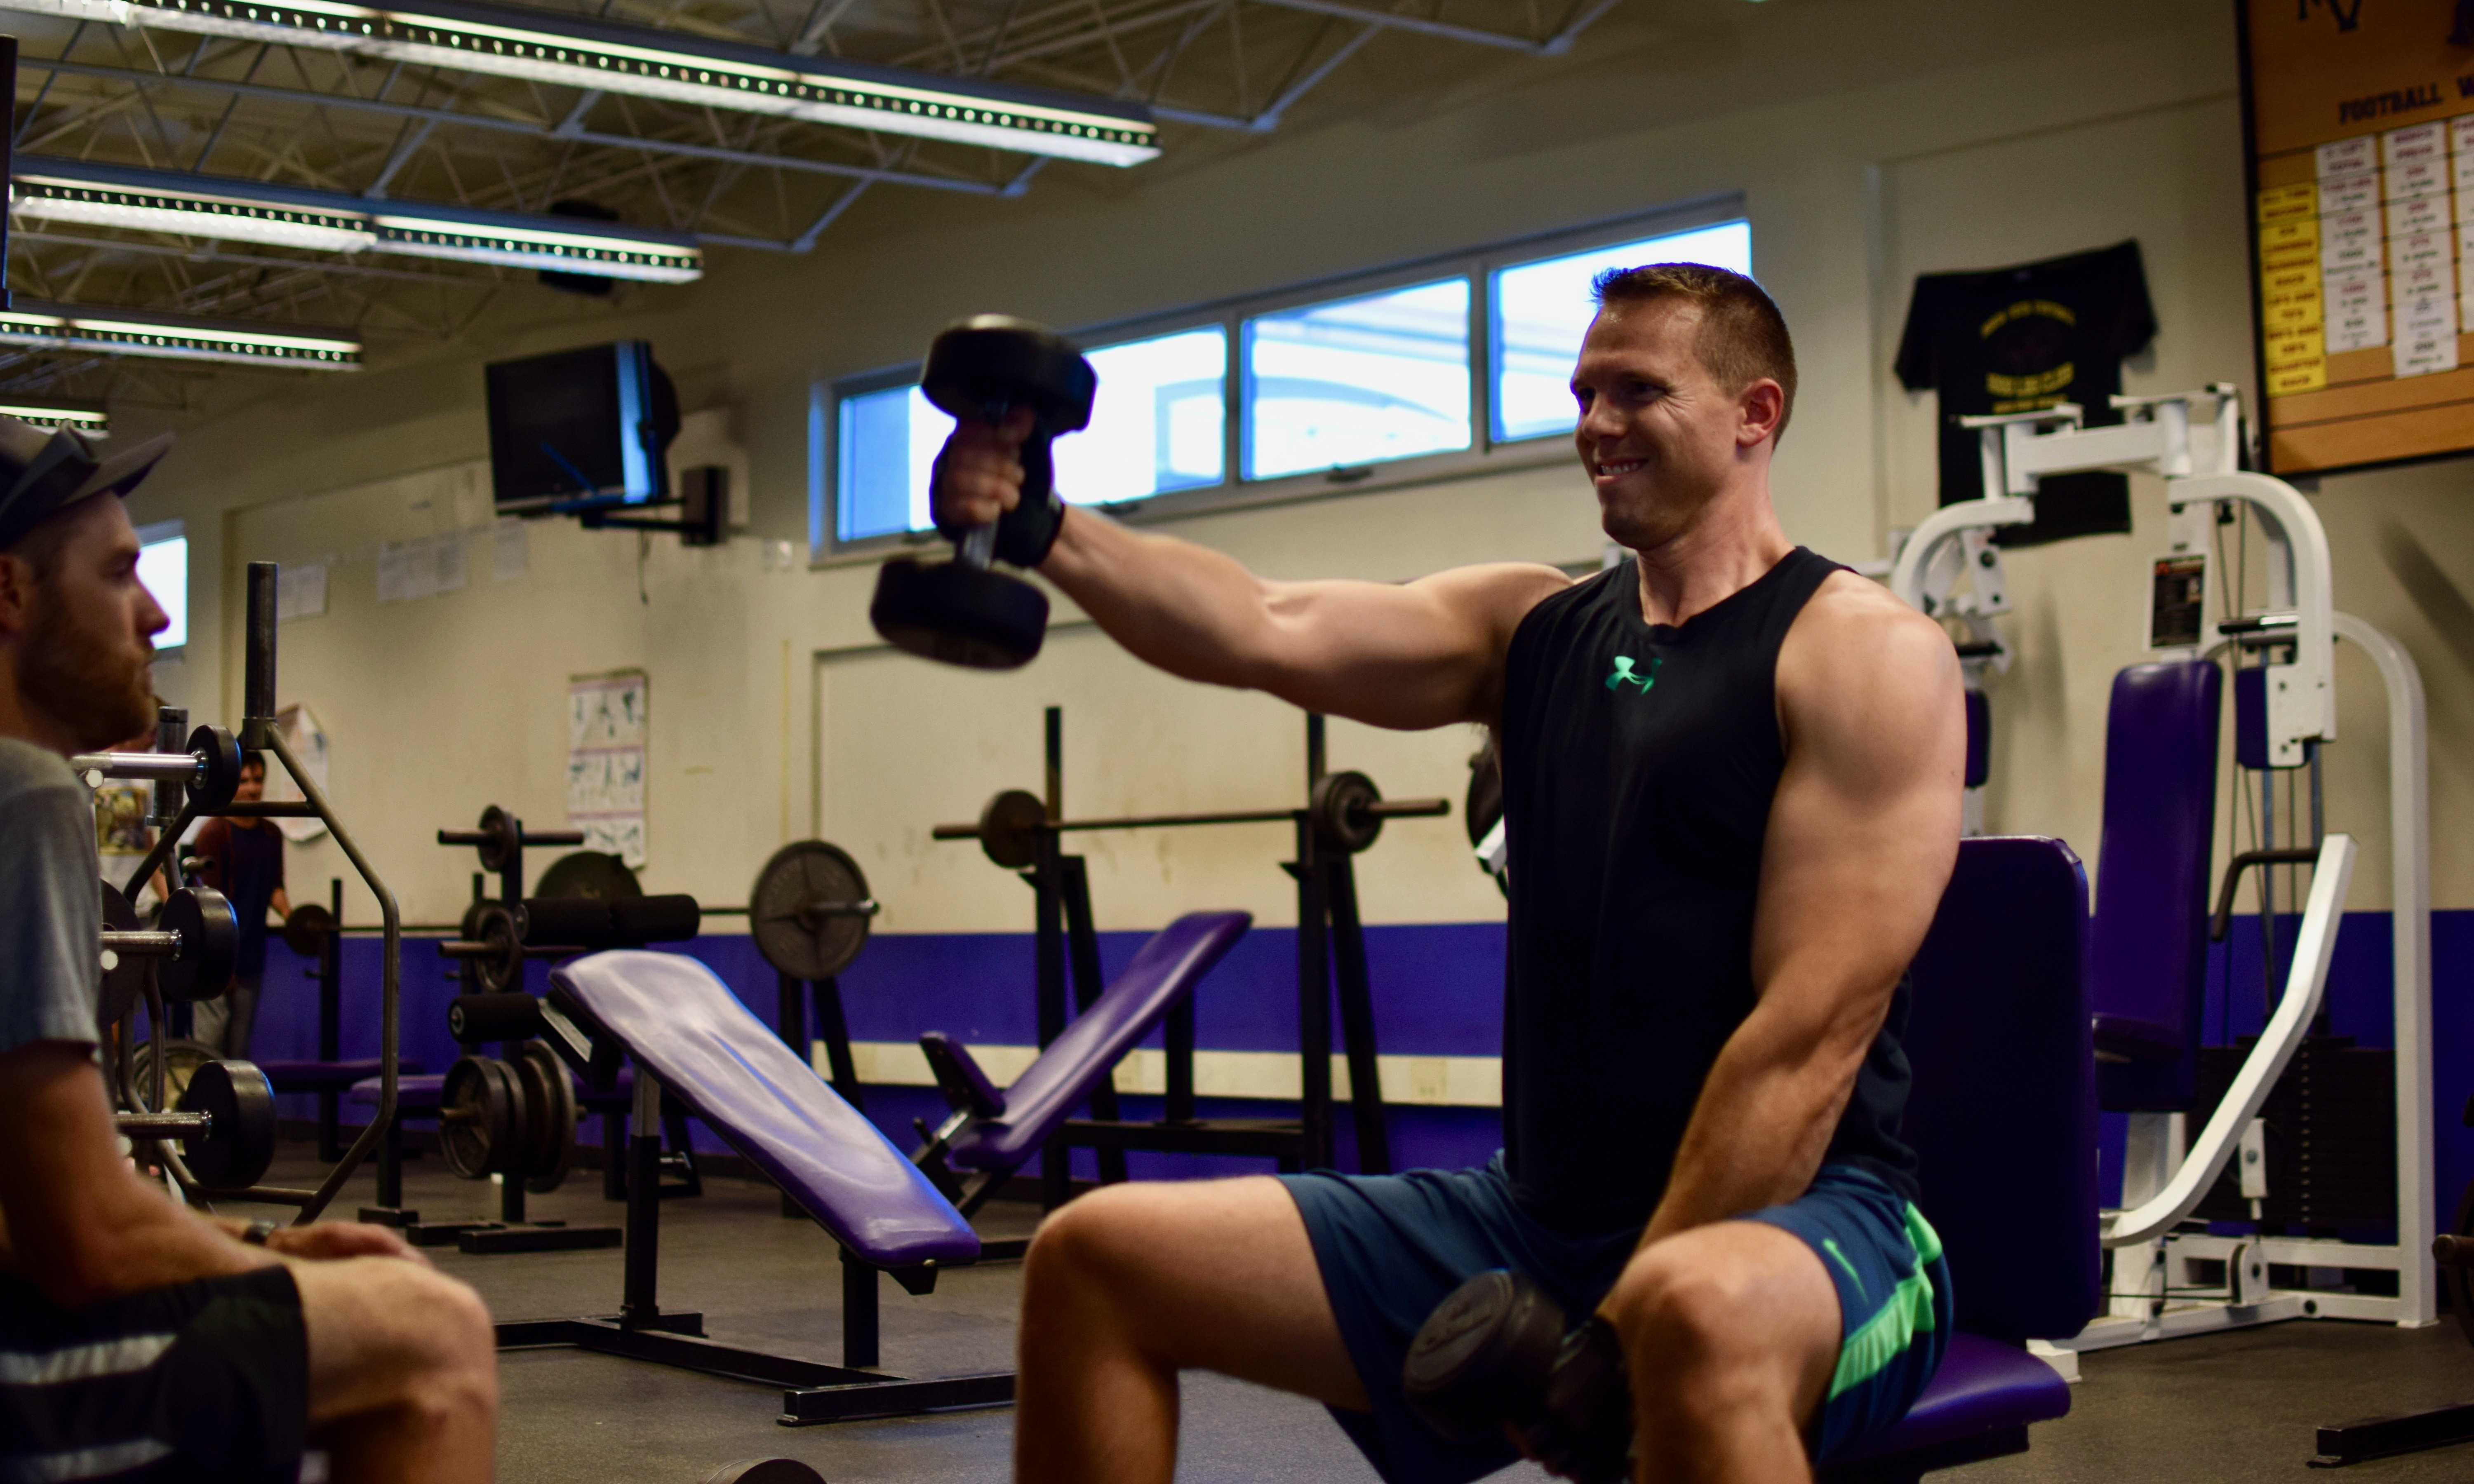 Guidance counselor Clay Stivers performs forward raises in the MVHS weight room. Stiver opens up the room from 4 to 6pm on Mondays and Wednesdays. Photo by Om Khandekar.